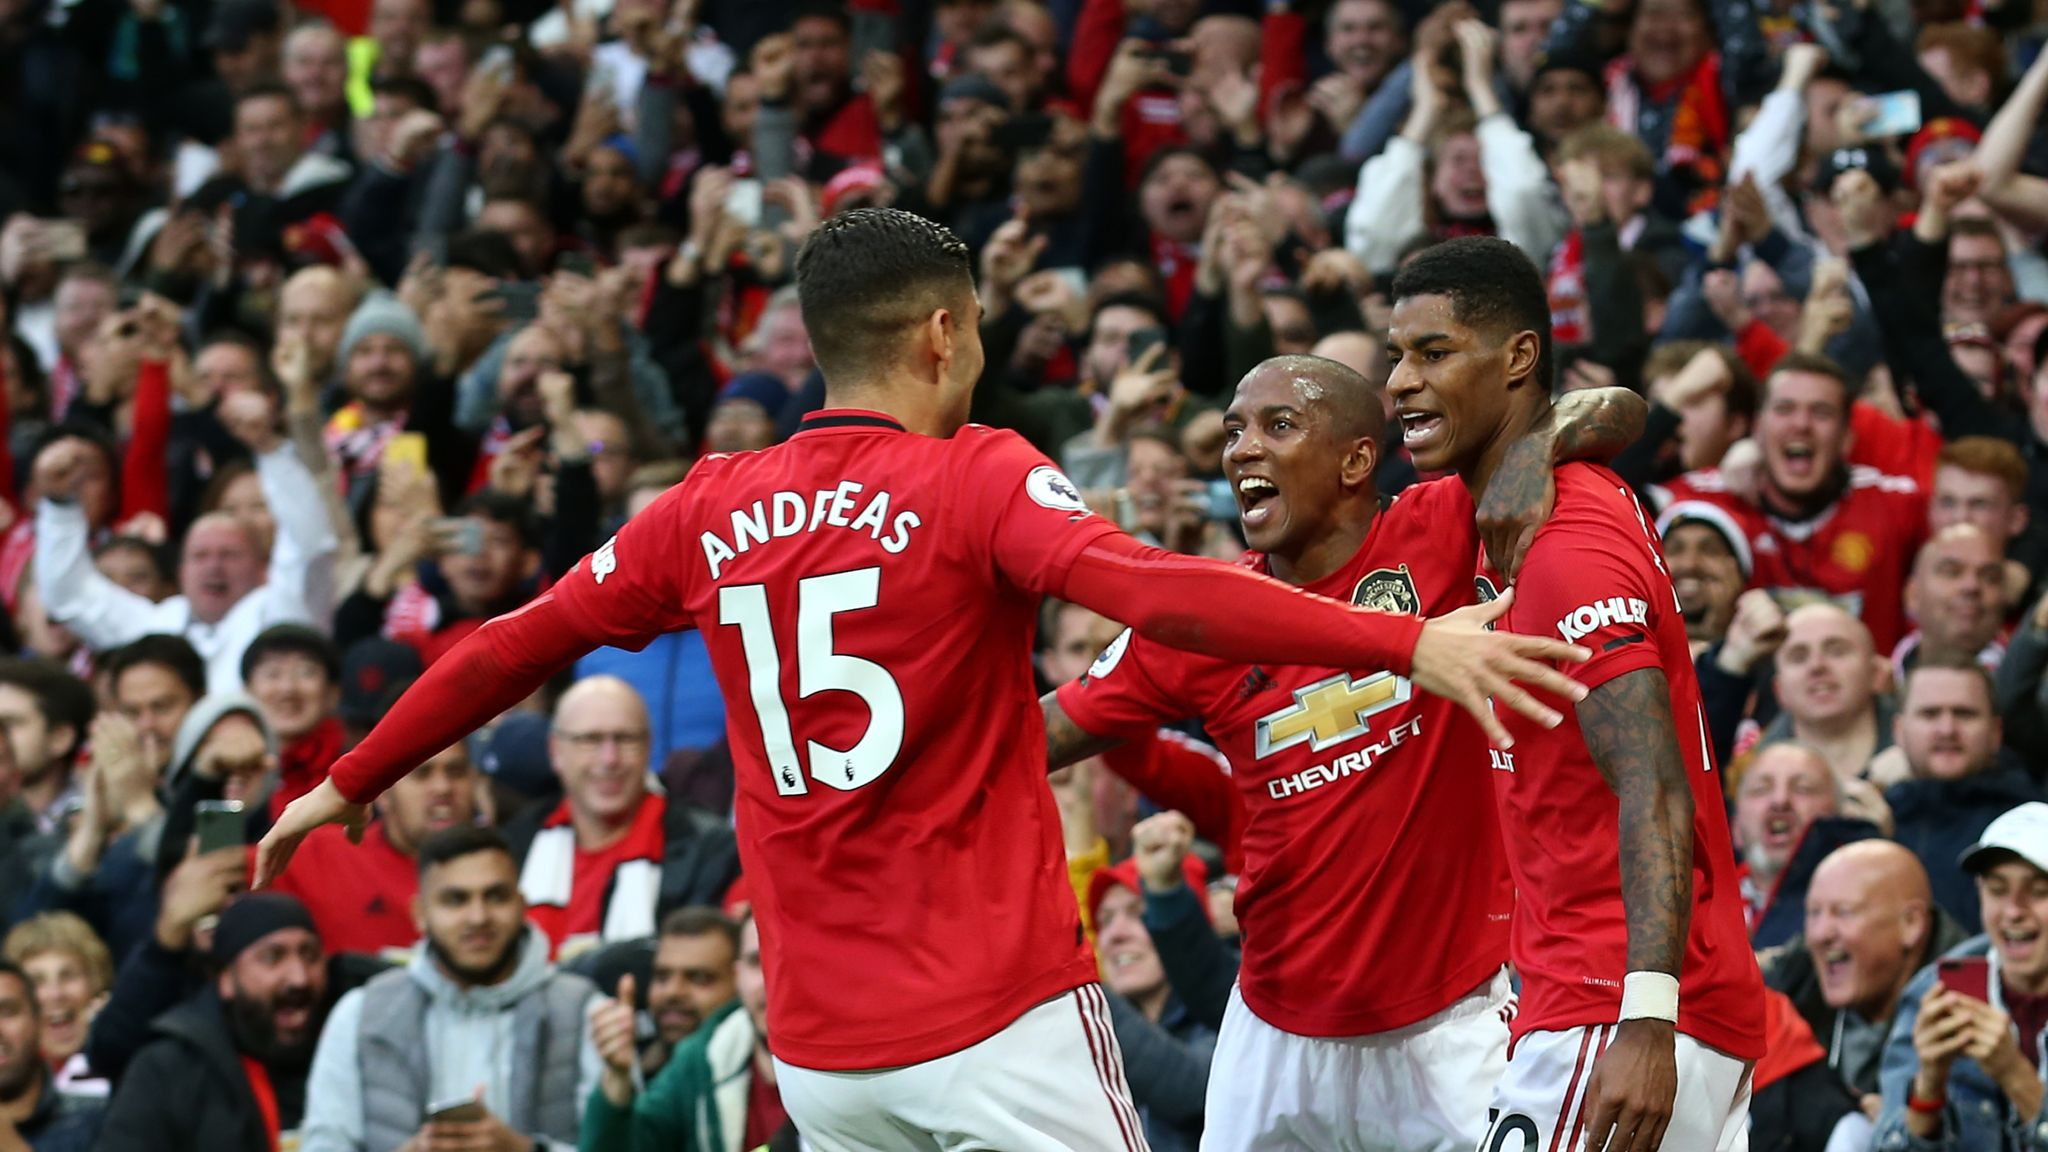 Manchester United 1-1 Liverpool player ratings: Marcus Rashford the top performer